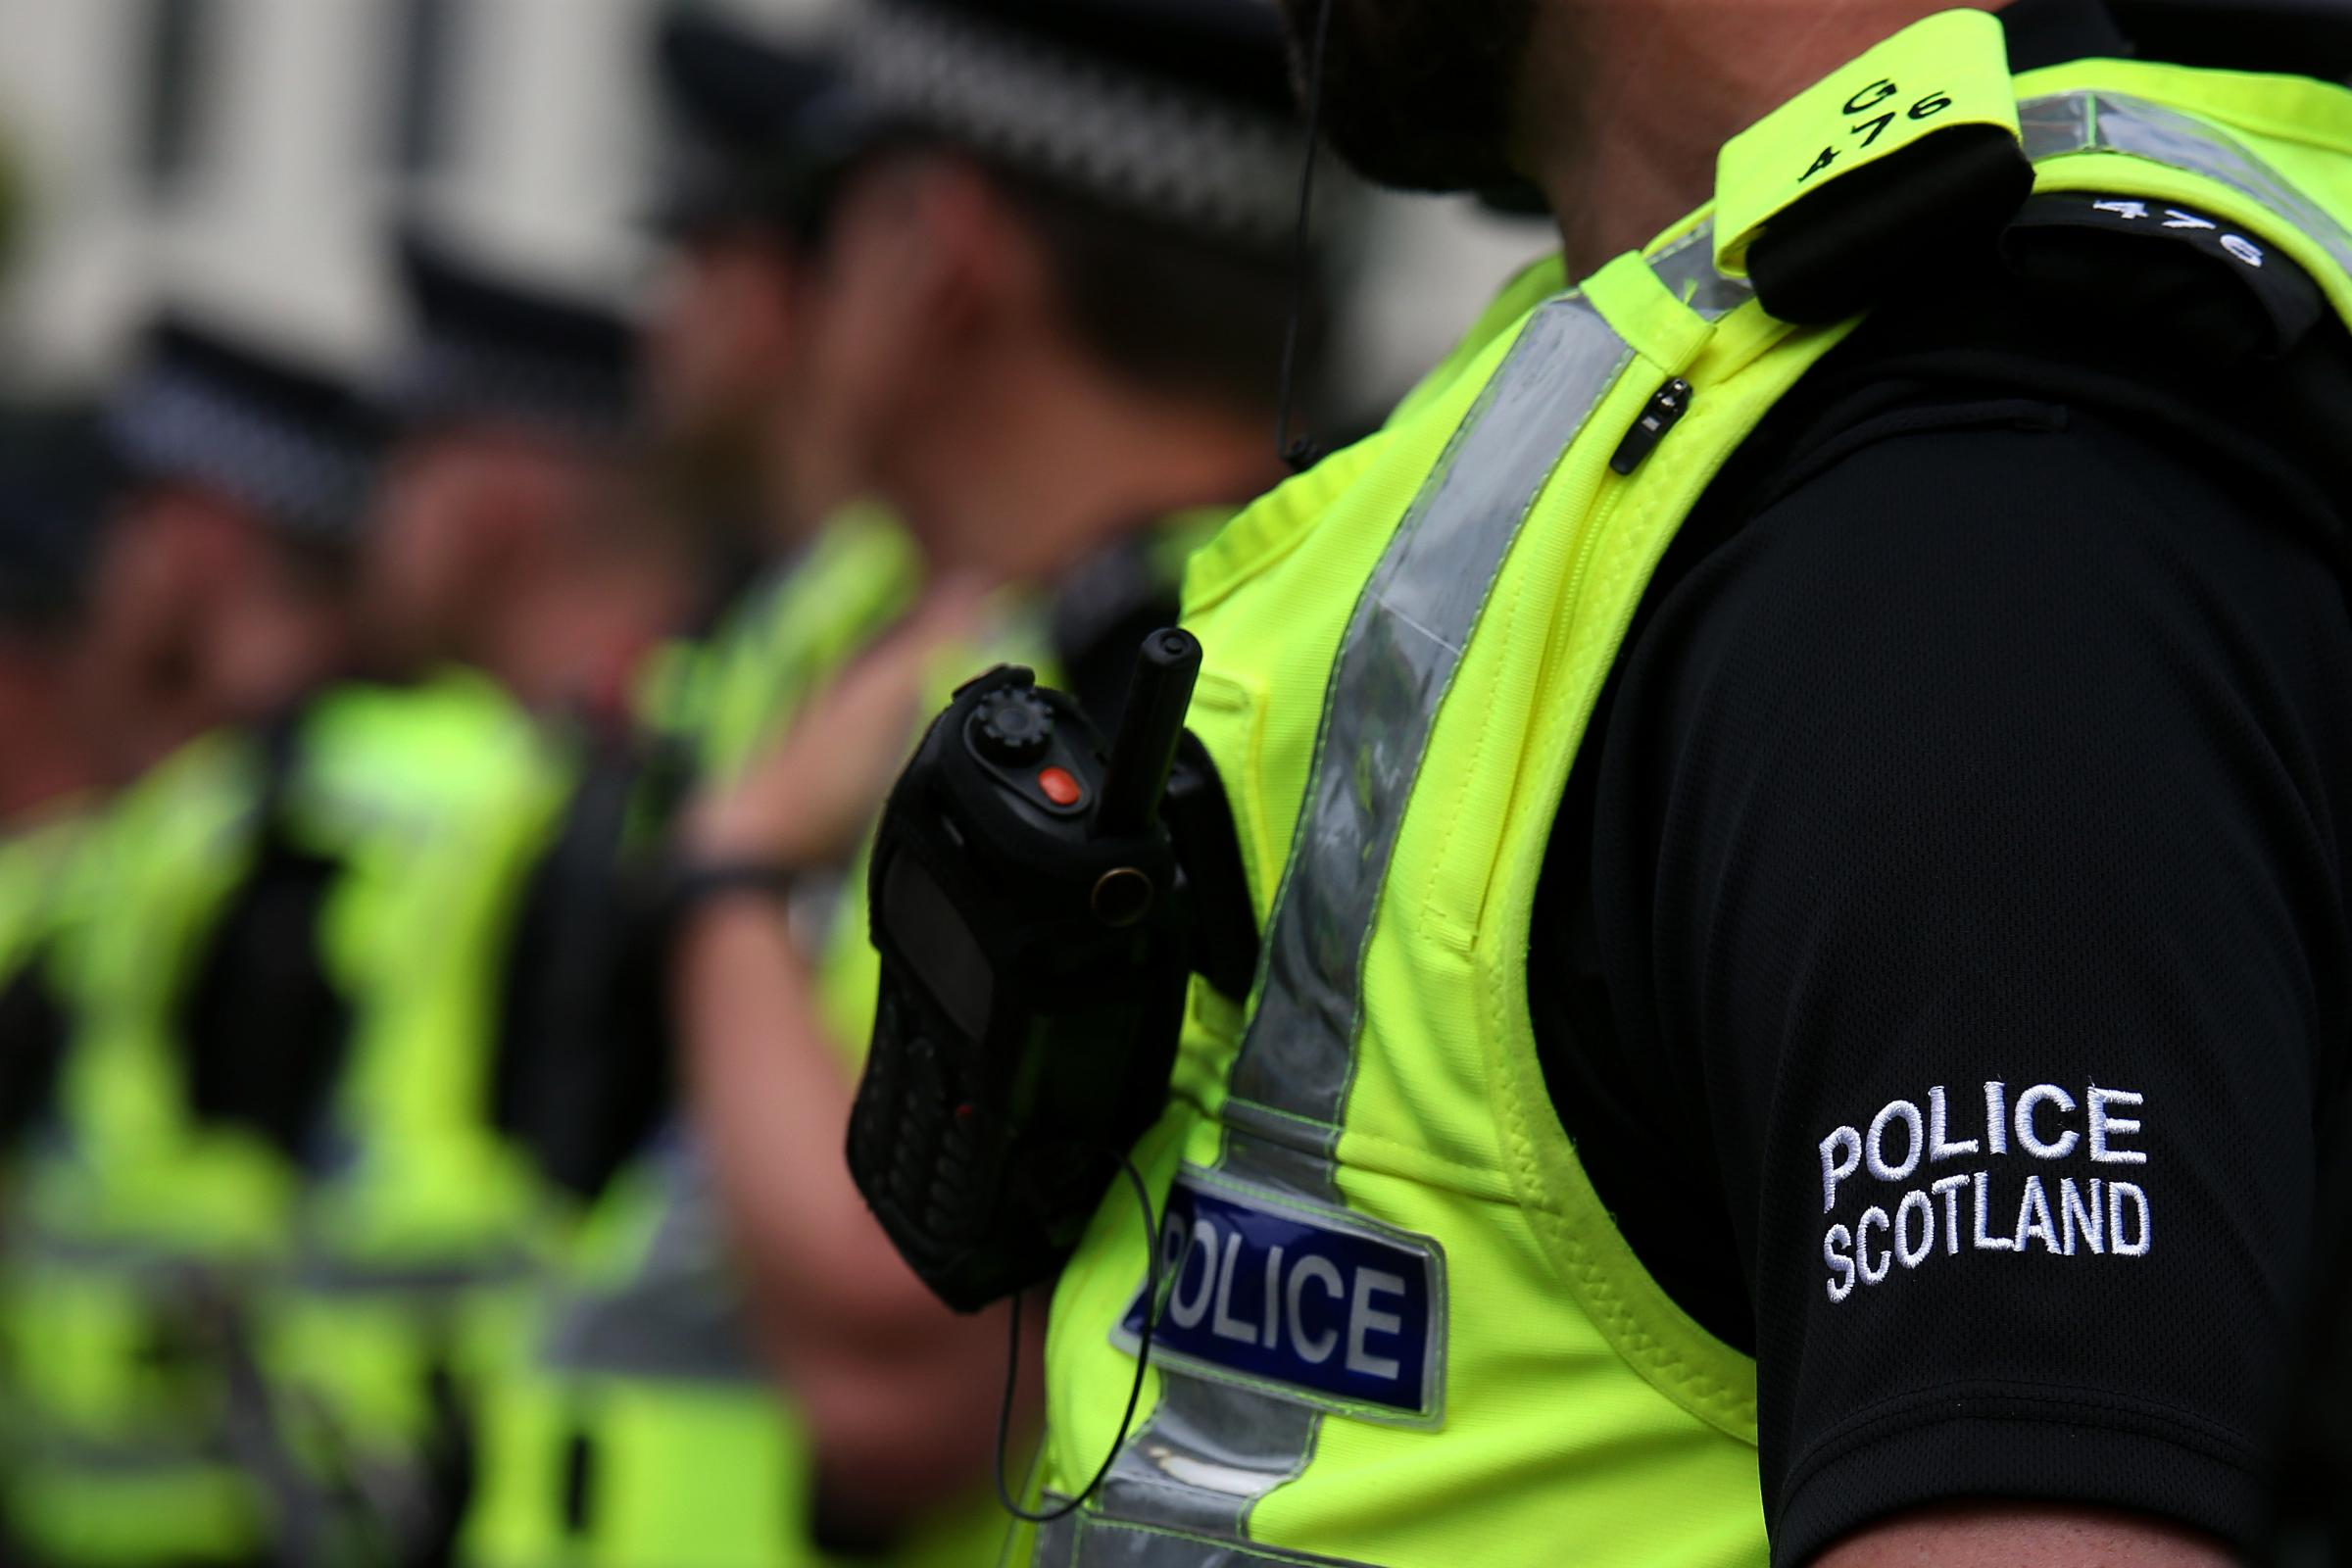 Police Scotland officer